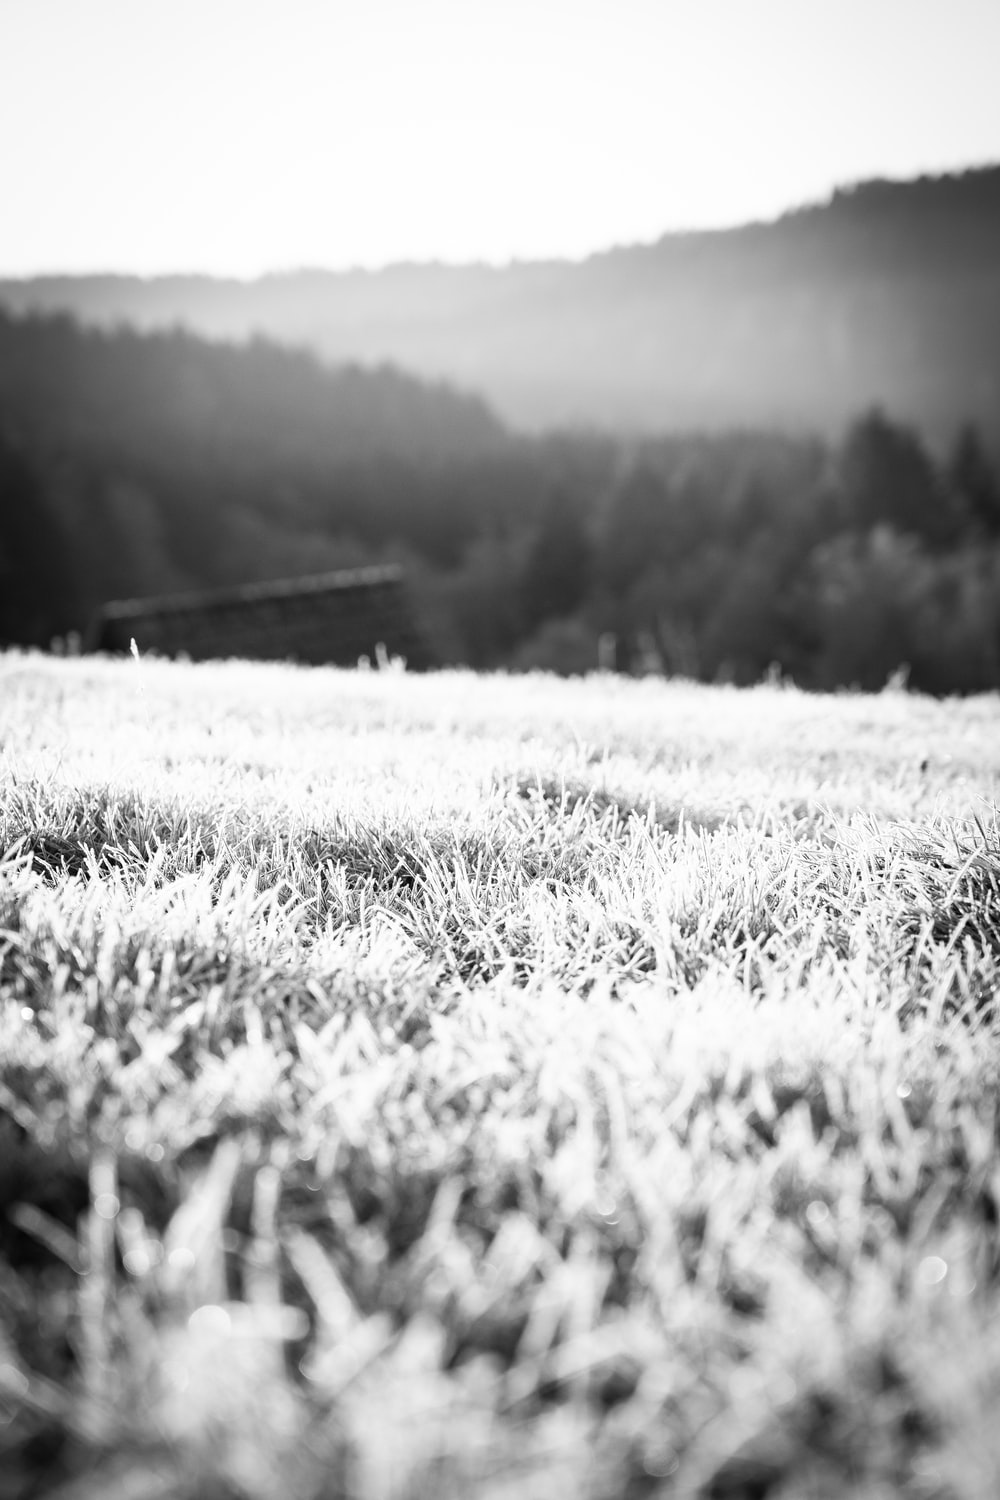 grayscale photography of field viewing trees